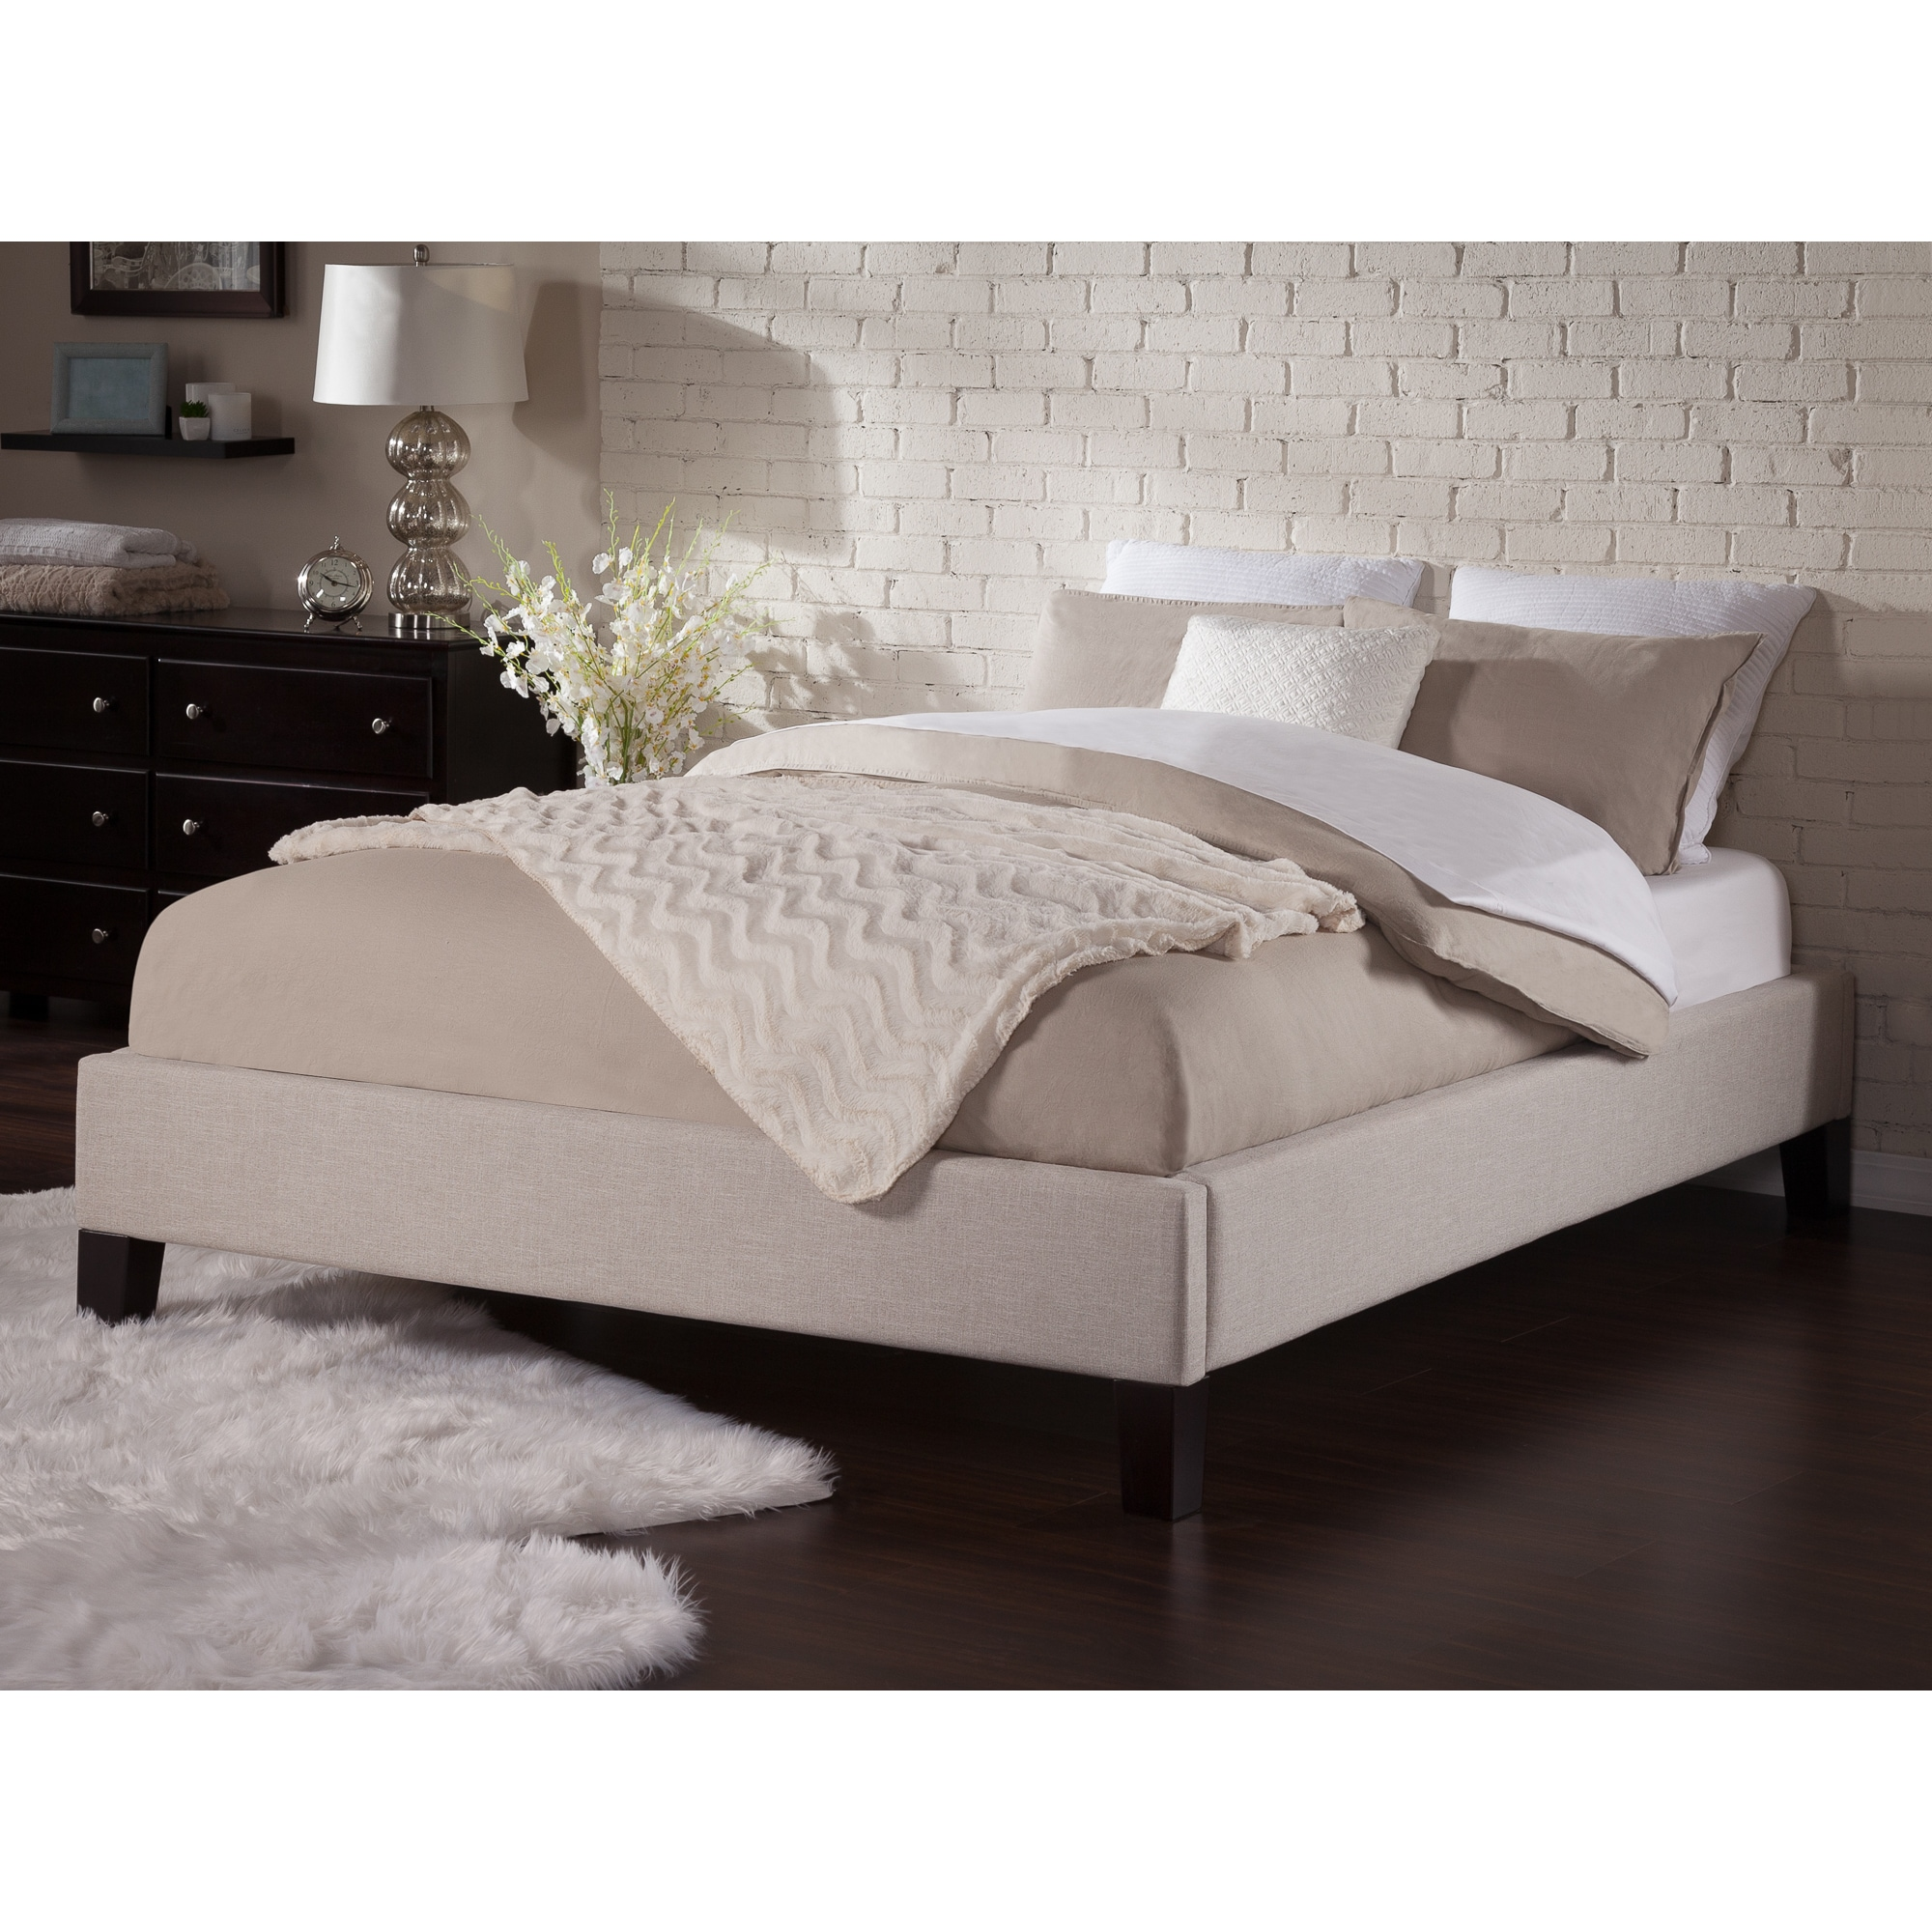 Atlantic Furniture Upholstered Platform Bed Frame Queen i...